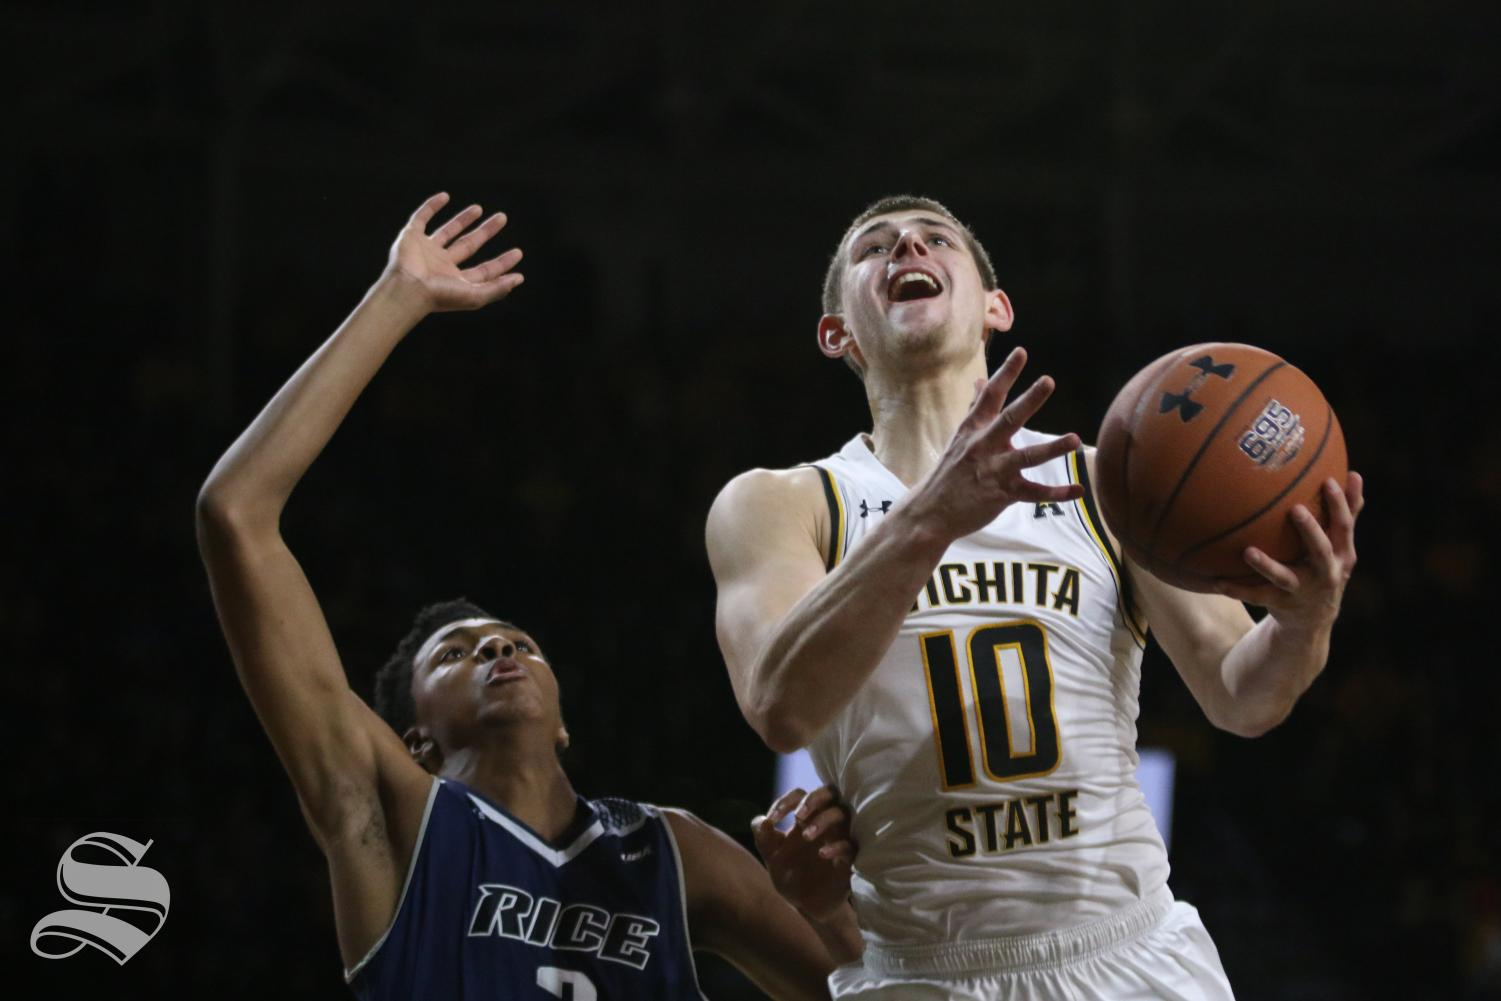 Wichita State freshman Erik Stevenson goes up for a basket during the game against Rice.